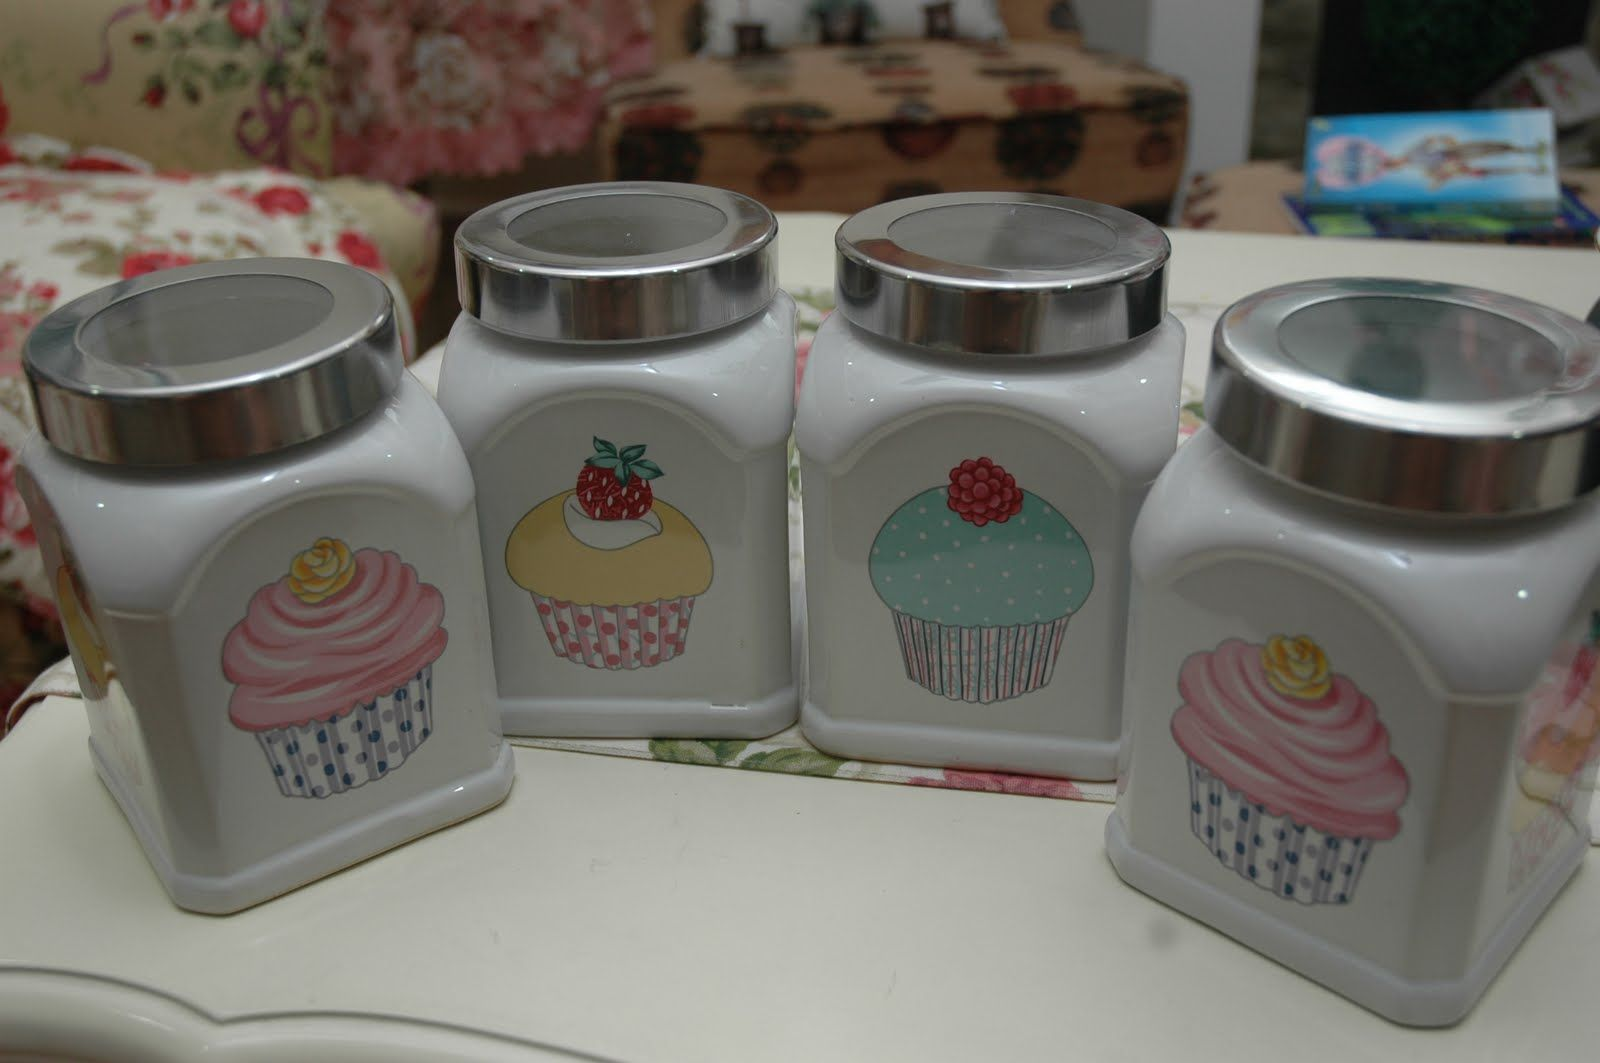 cupcake canisters for kitchen canisters cupcake kitchen decor kitchen decor sets cupcake kitchen theme 2074